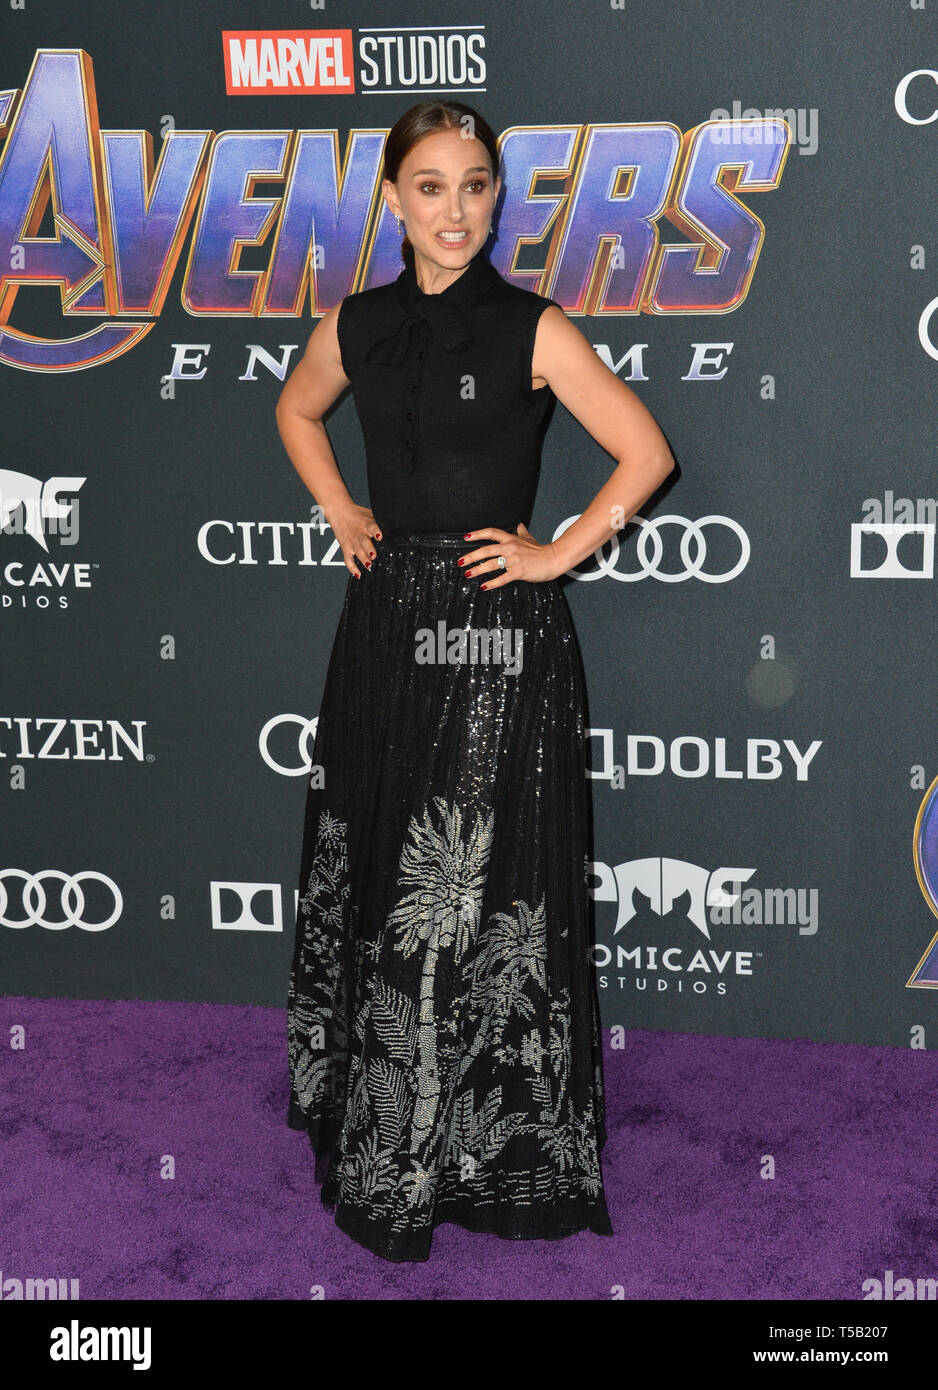 Los Angeles, Estados Unidos. 22 abr, 2019. LOS ANGELES, Estados Unidos. Abril 22, 2019: Natalie Portman en el estreno mundial de Marvel Studios' 'Vengadores: Endgame'. Crédito: Paul Smith/Alamy Live News Imagen De Stock